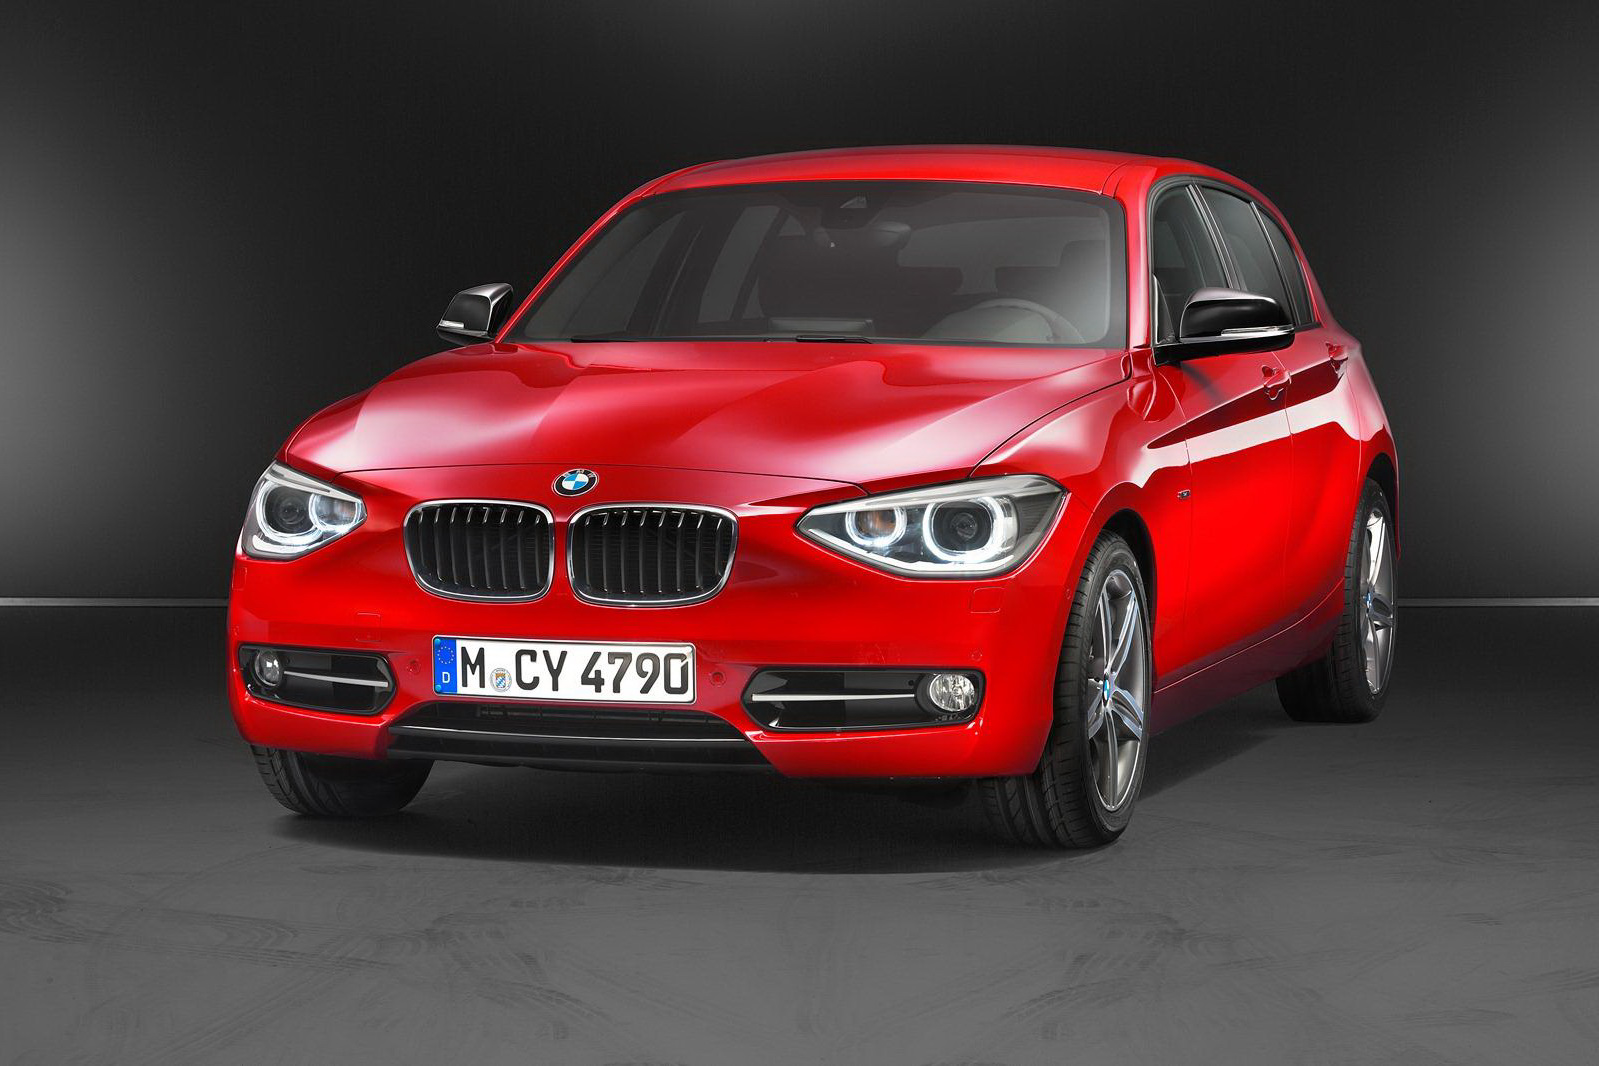 2012 bmw 1 series hatchback with 1 6 liter turbo gasoline. Black Bedroom Furniture Sets. Home Design Ideas